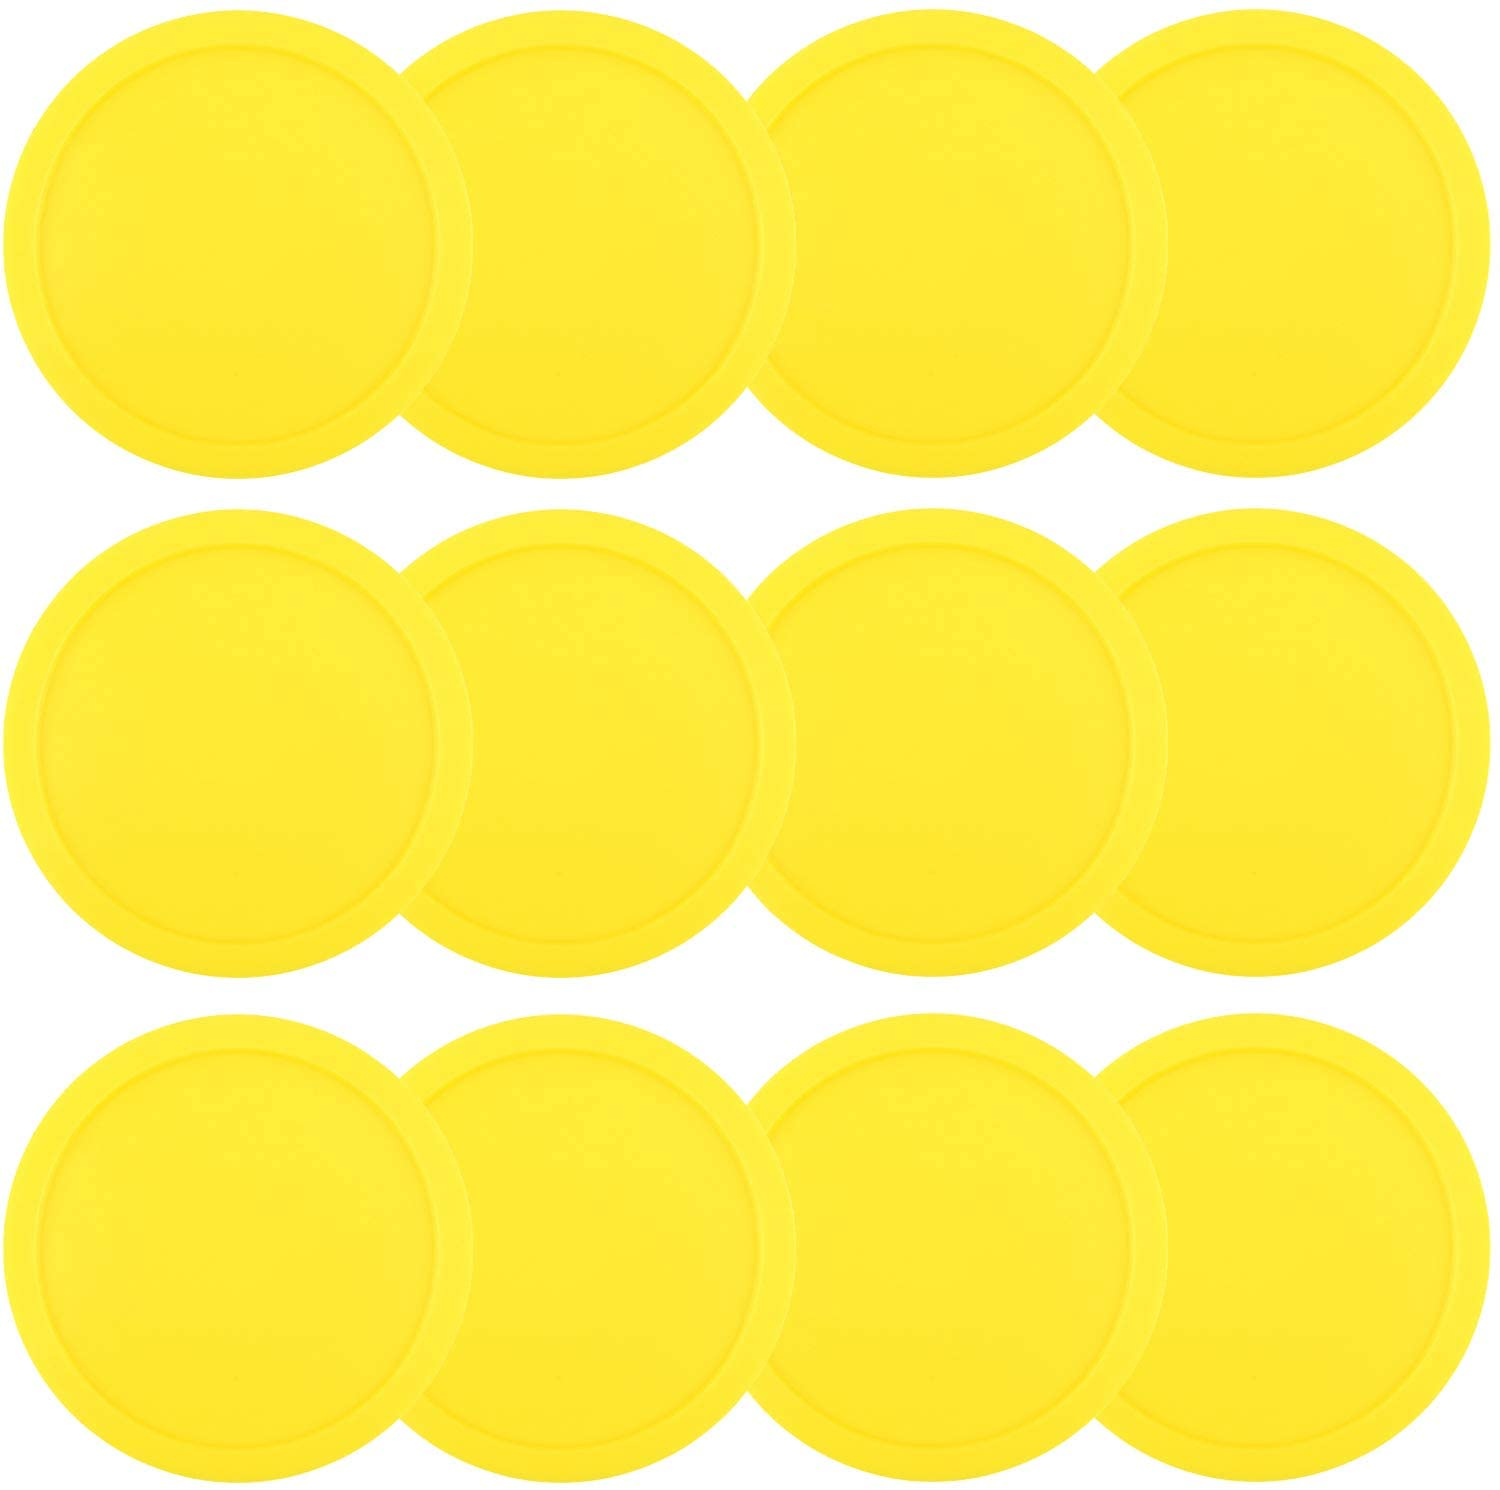 ONE250 3 1/4 inch Air Hockey Pucks, One Dozen Goal Full Size Packs Replacement Accessories for Game Tables (12 Pcs)